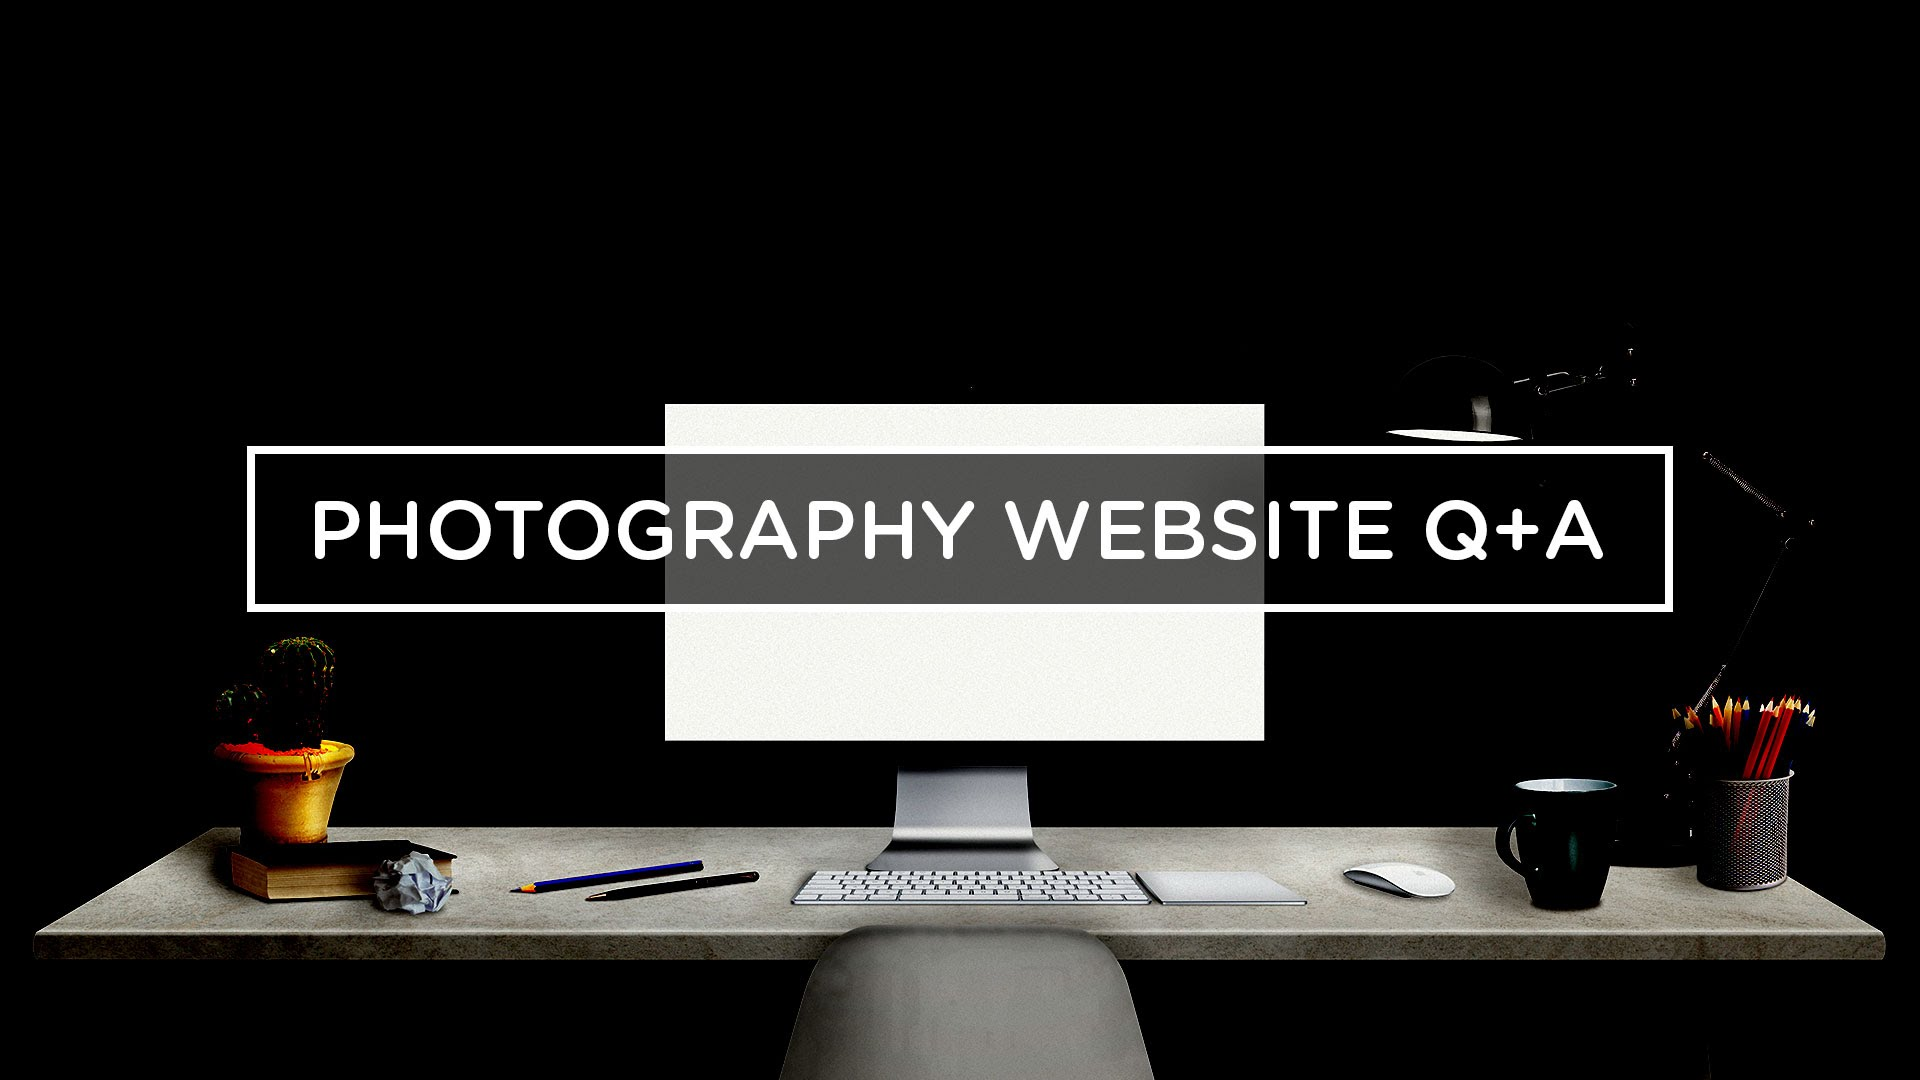 Best photography sites 2018 Woodward Rick Photographers - Hendersonville, NC - The Knot